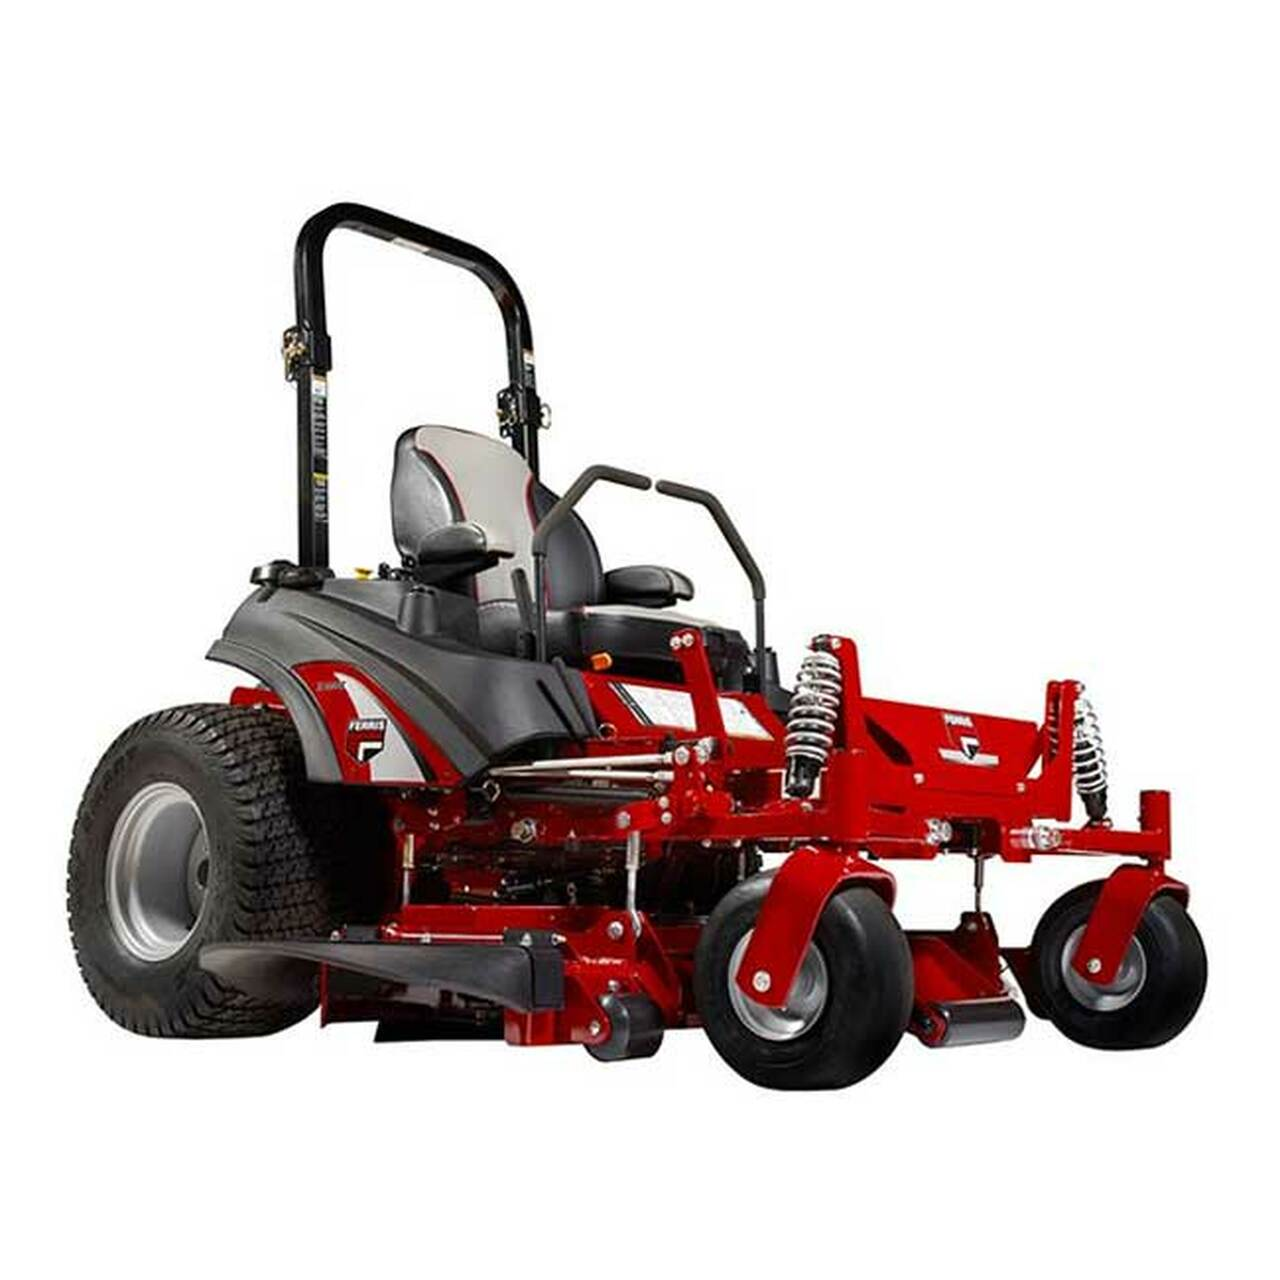 An Amazing Guide For You To Buy Big Dog Zero Turn Mowers